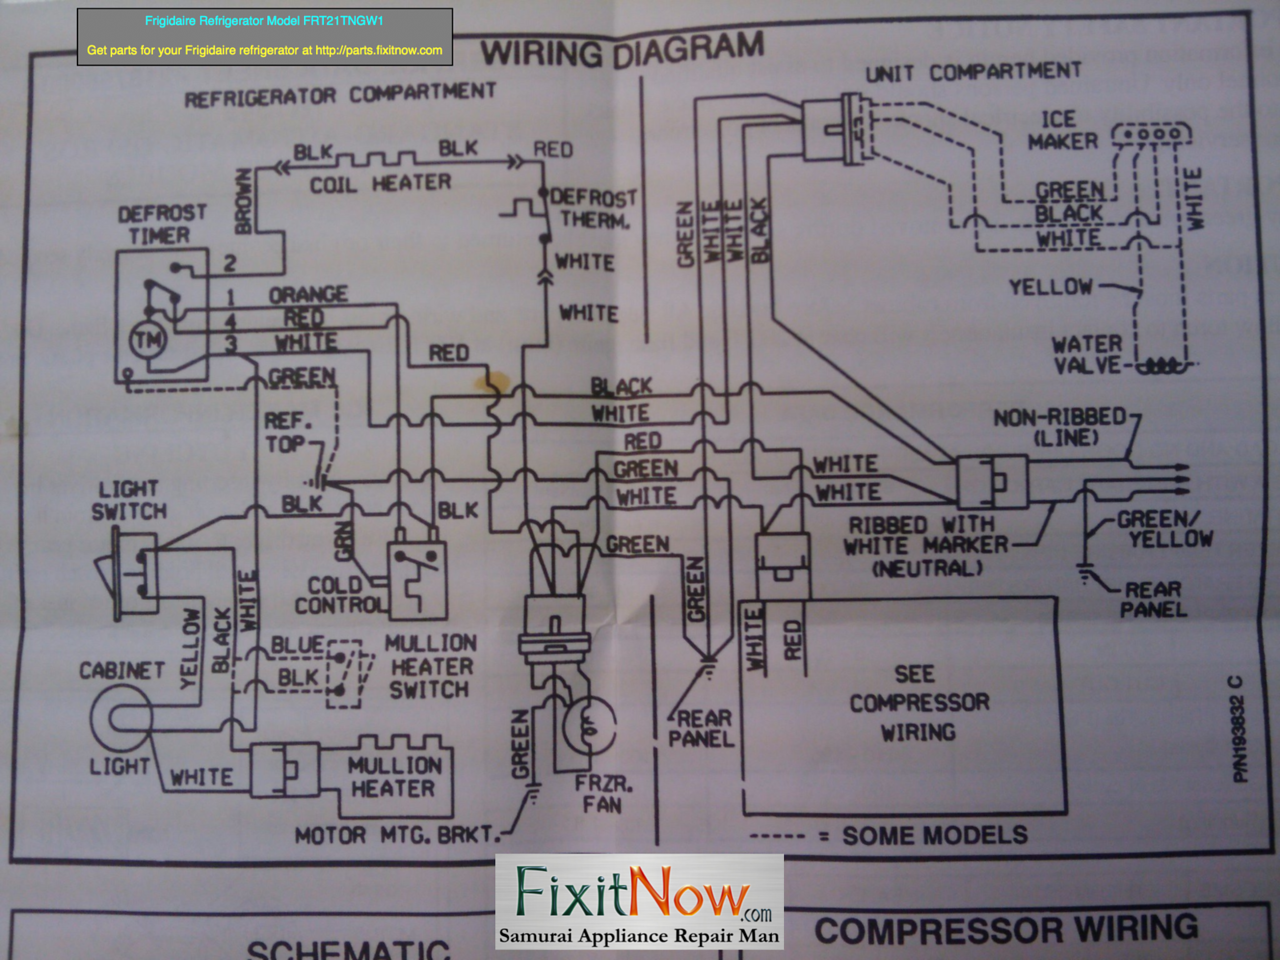 4927632513_66c123c922_o X2 ge refrigerator wiring diagram general electric refrigerators Whirlpool Refrigerator Model Numbers at eliteediting.co